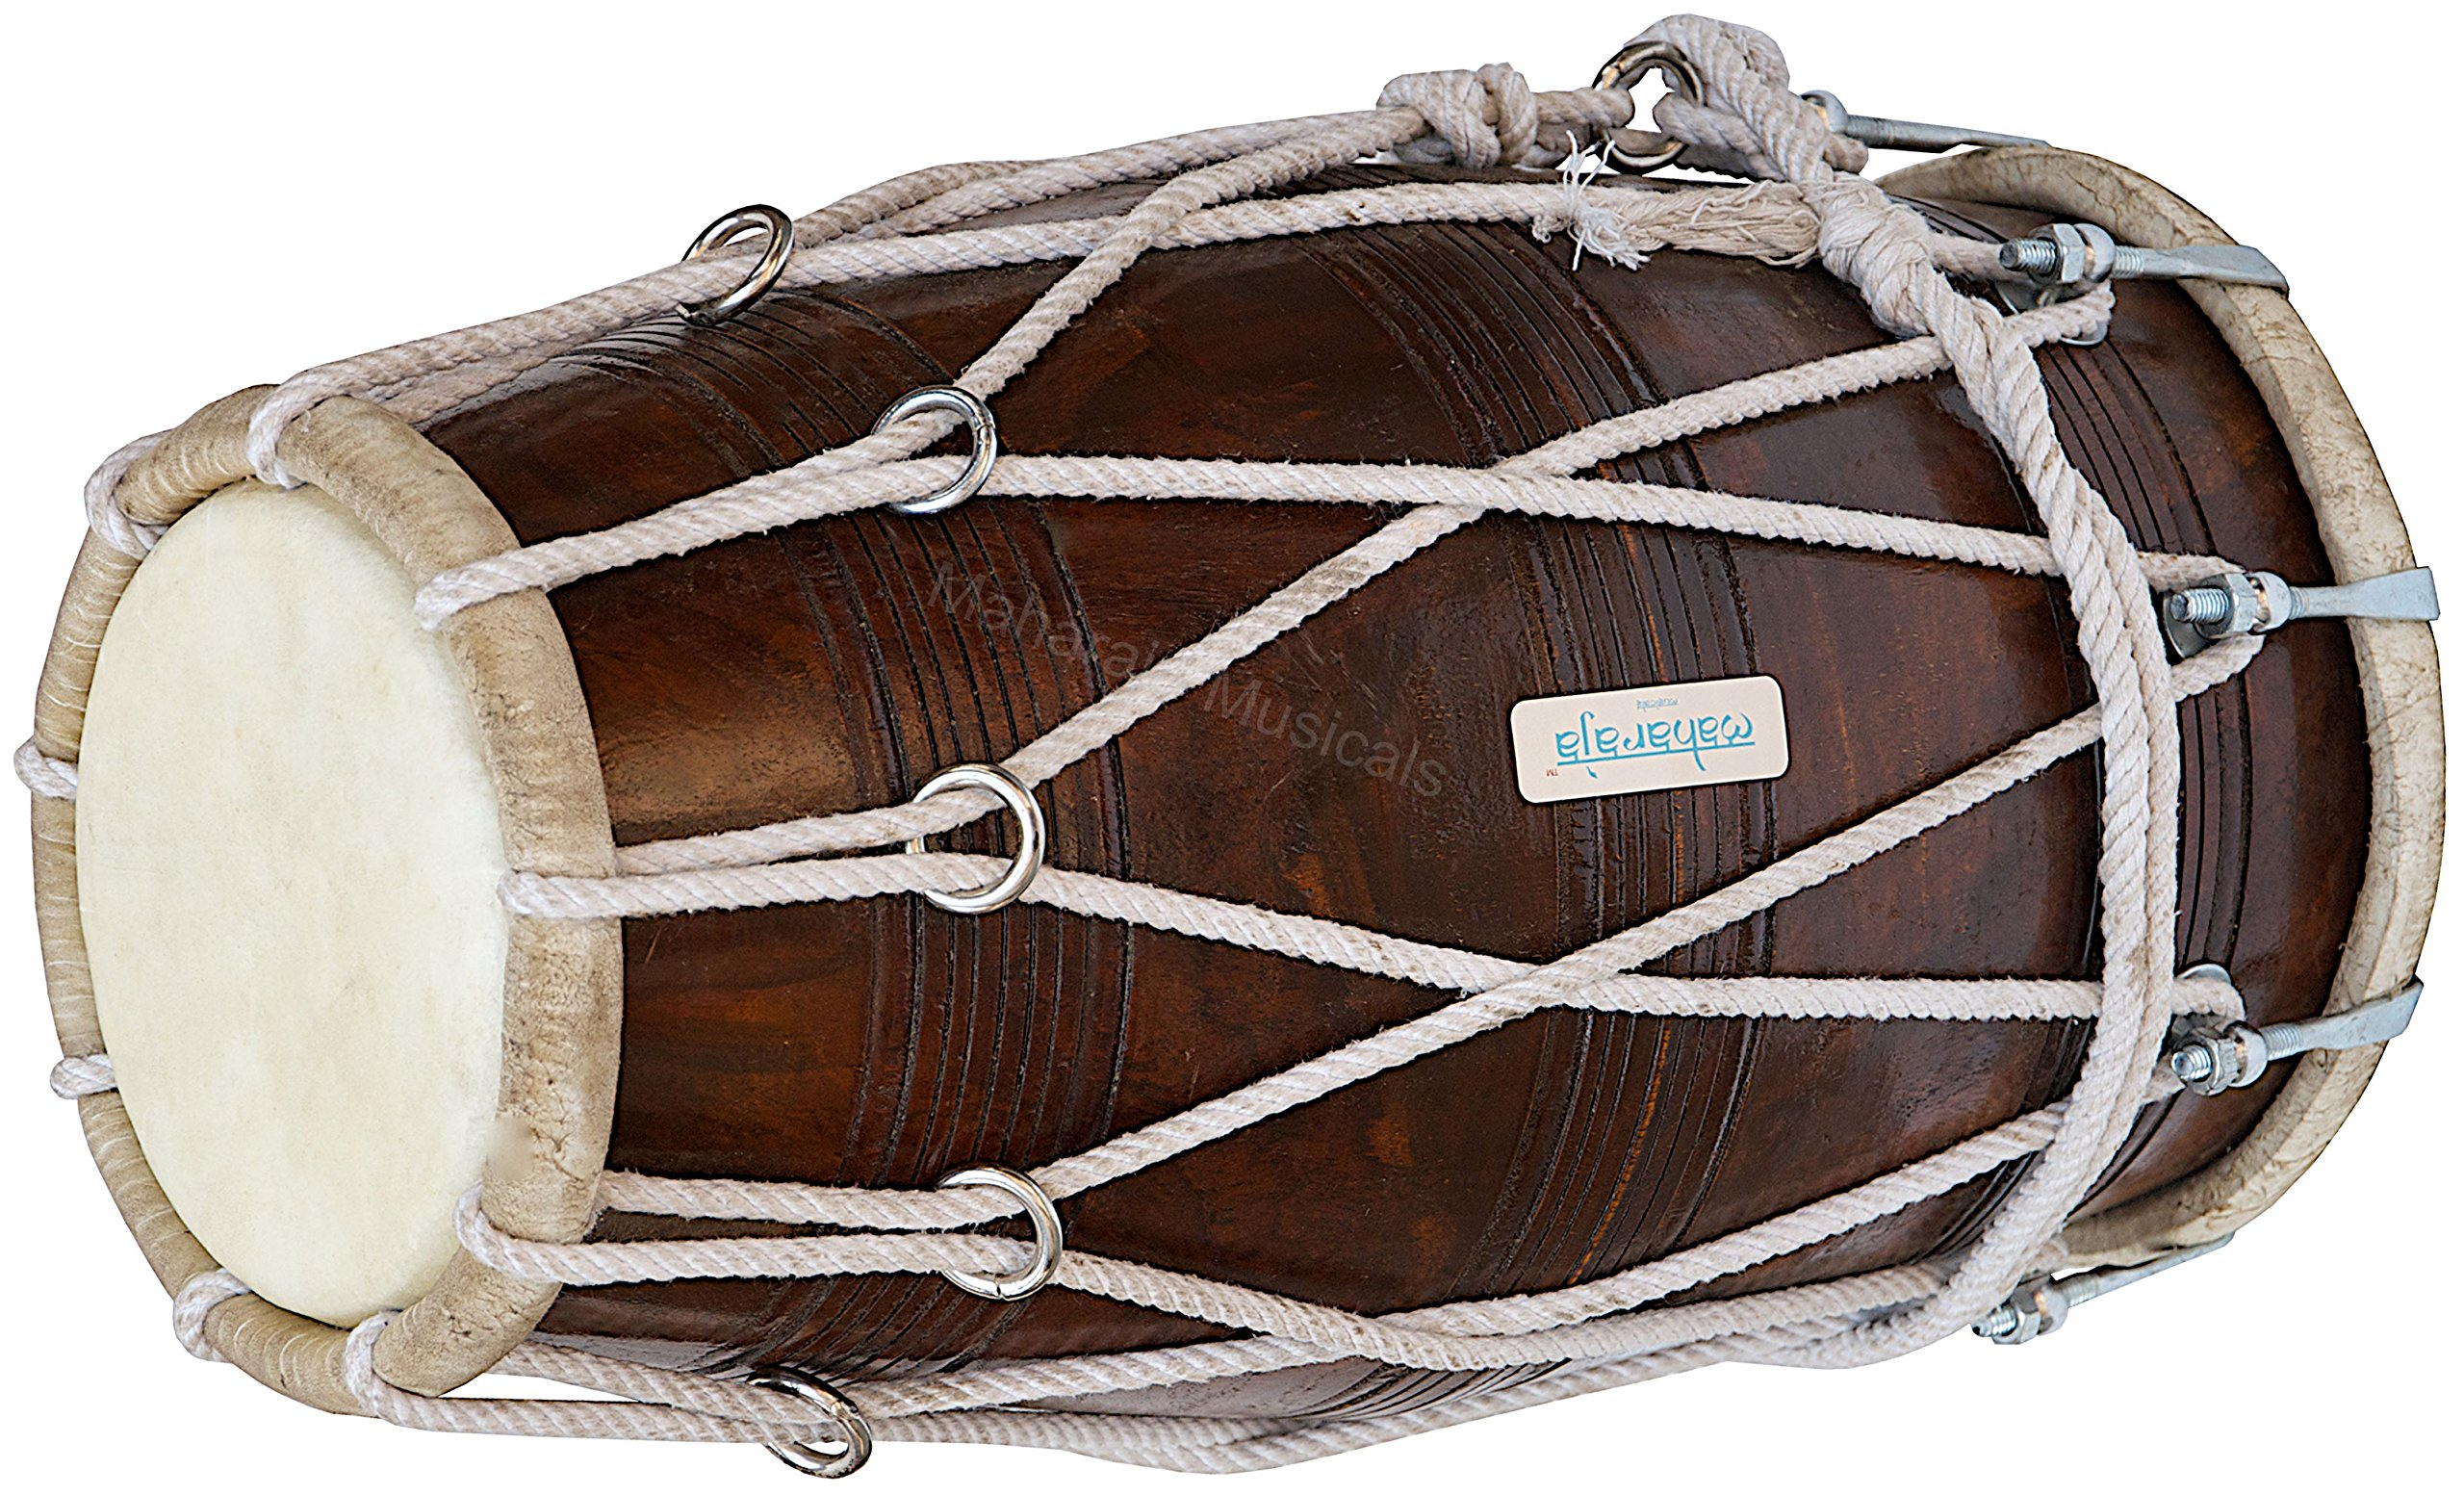 Special Dholak Drum by Maharaja Musicals, Professional Quality, Sheesham Wood, Padded Bag, Spanner, Dholki Musicals Instrument (PDI-BBC) by Maharaja Musicals (Image #1)